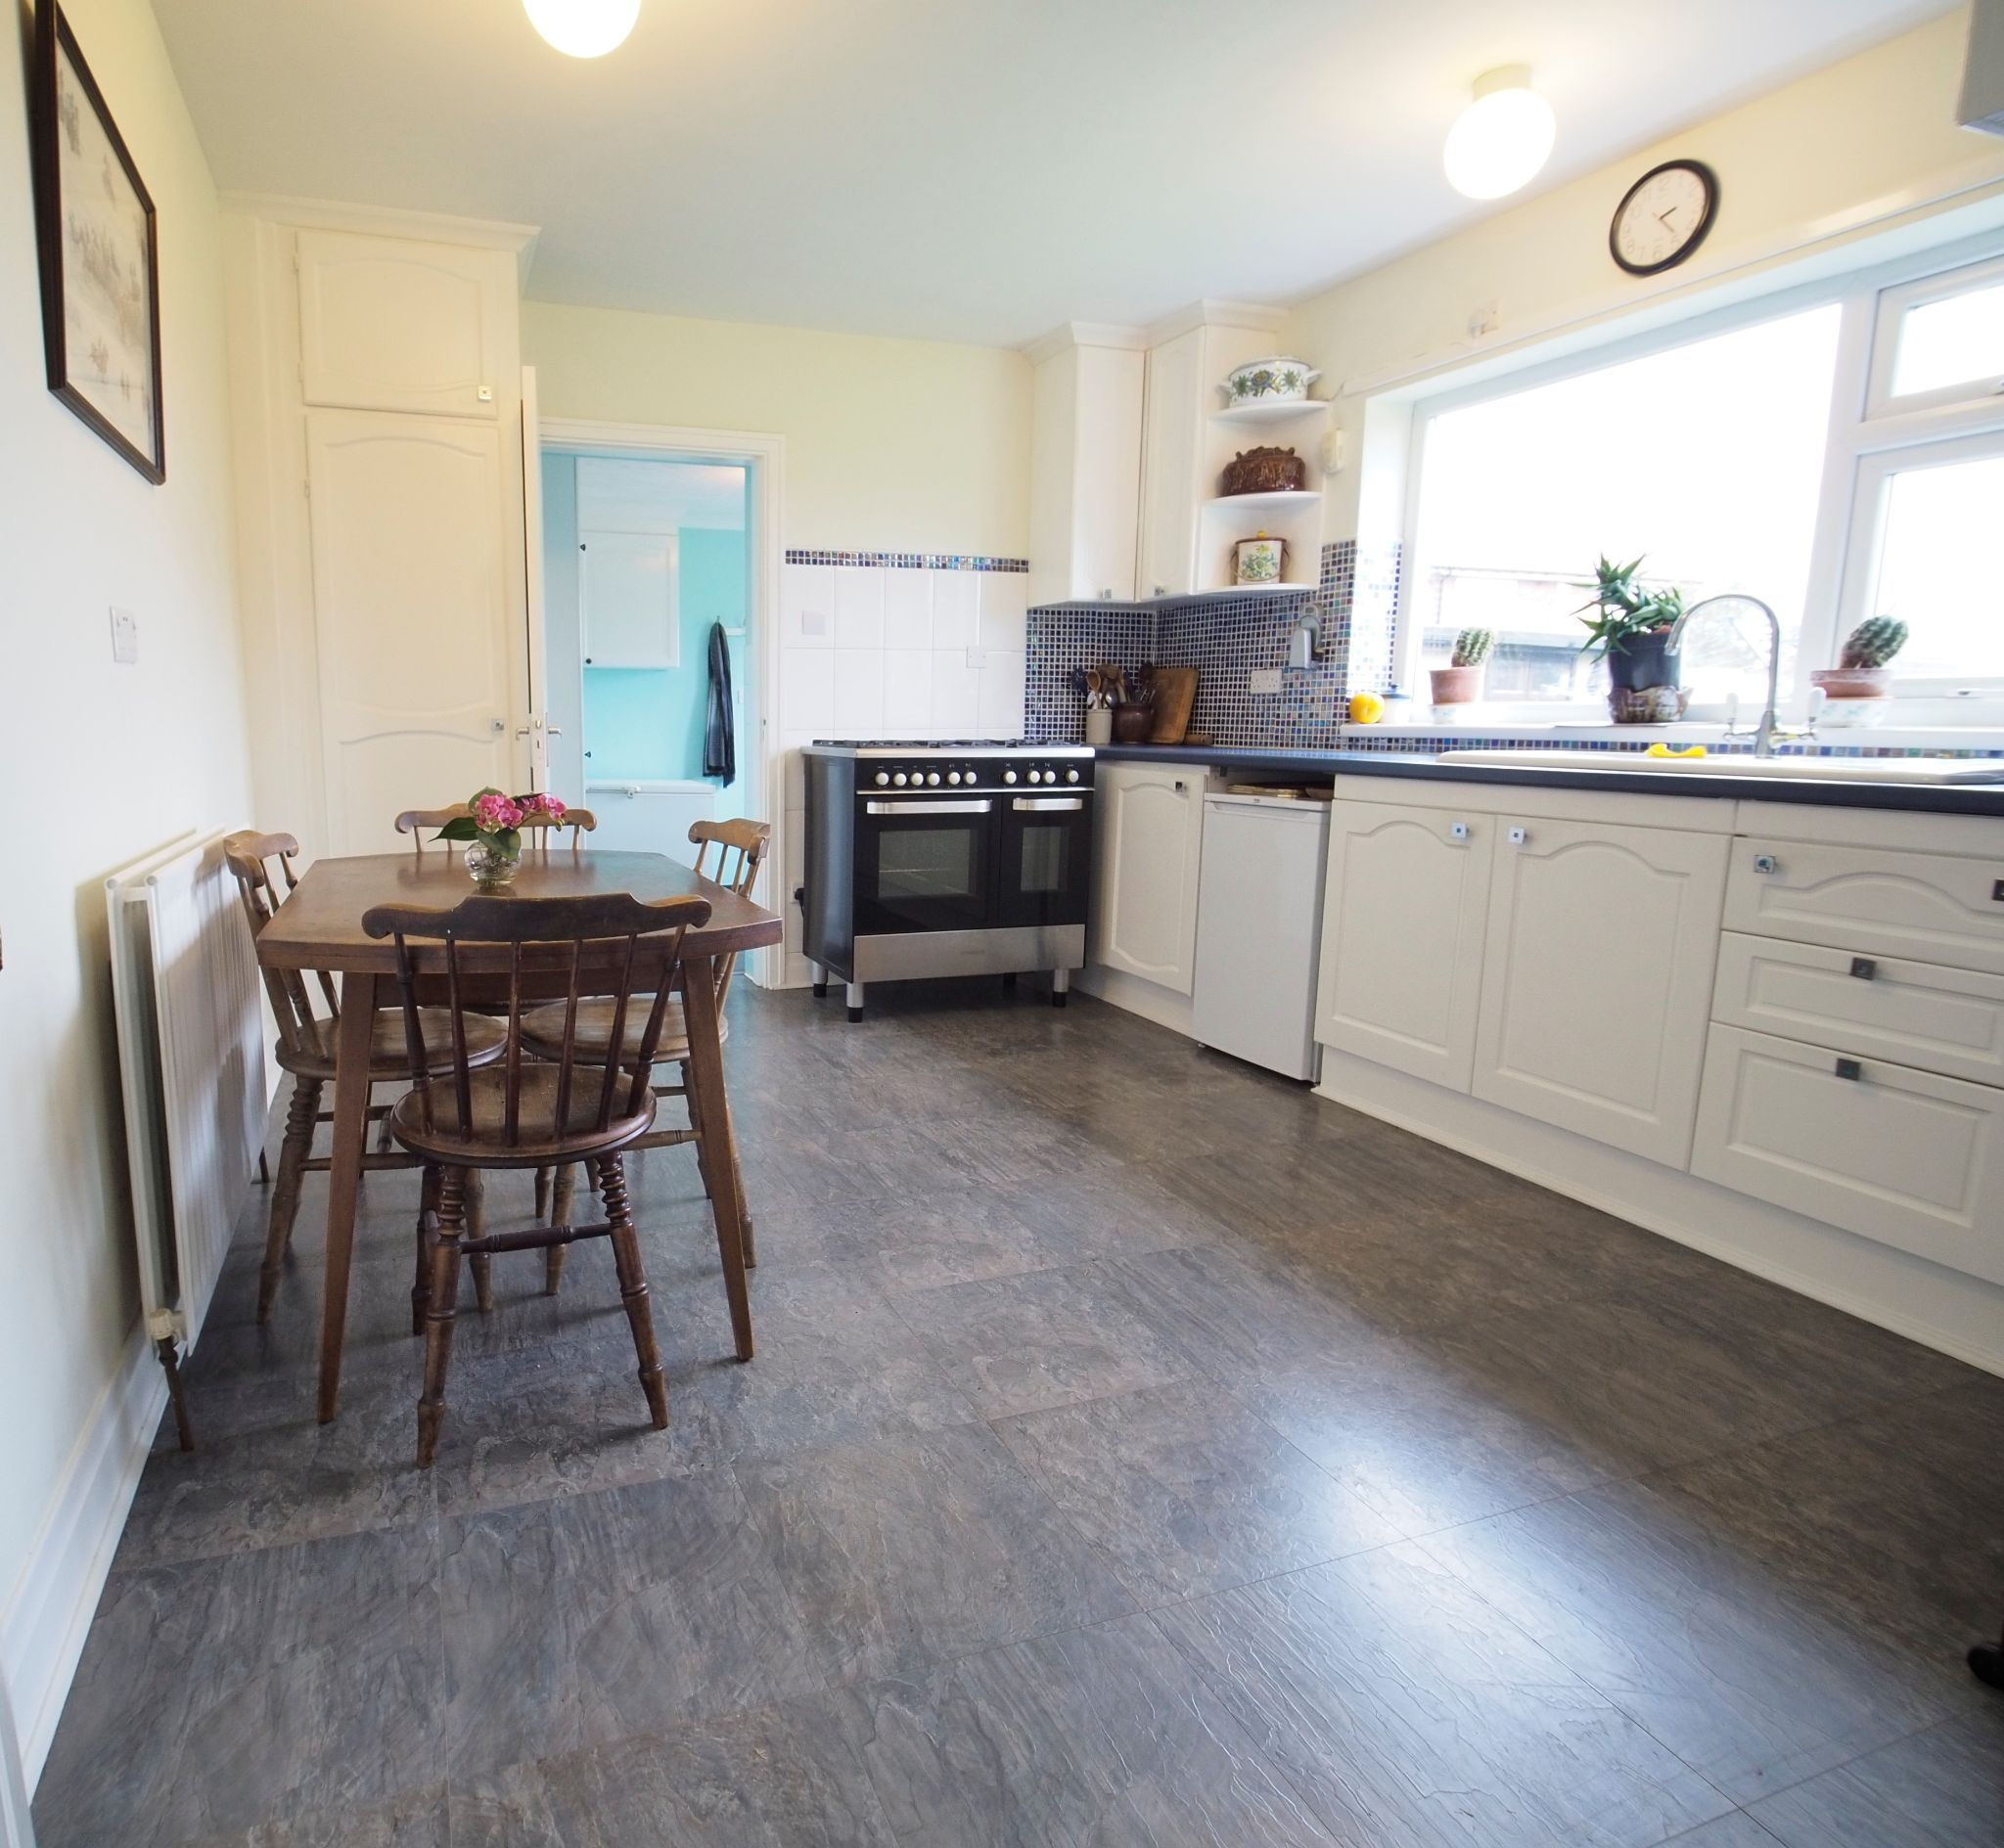 4 bedroom detached house For Sale in Willington - Kitchen/Breakfast.